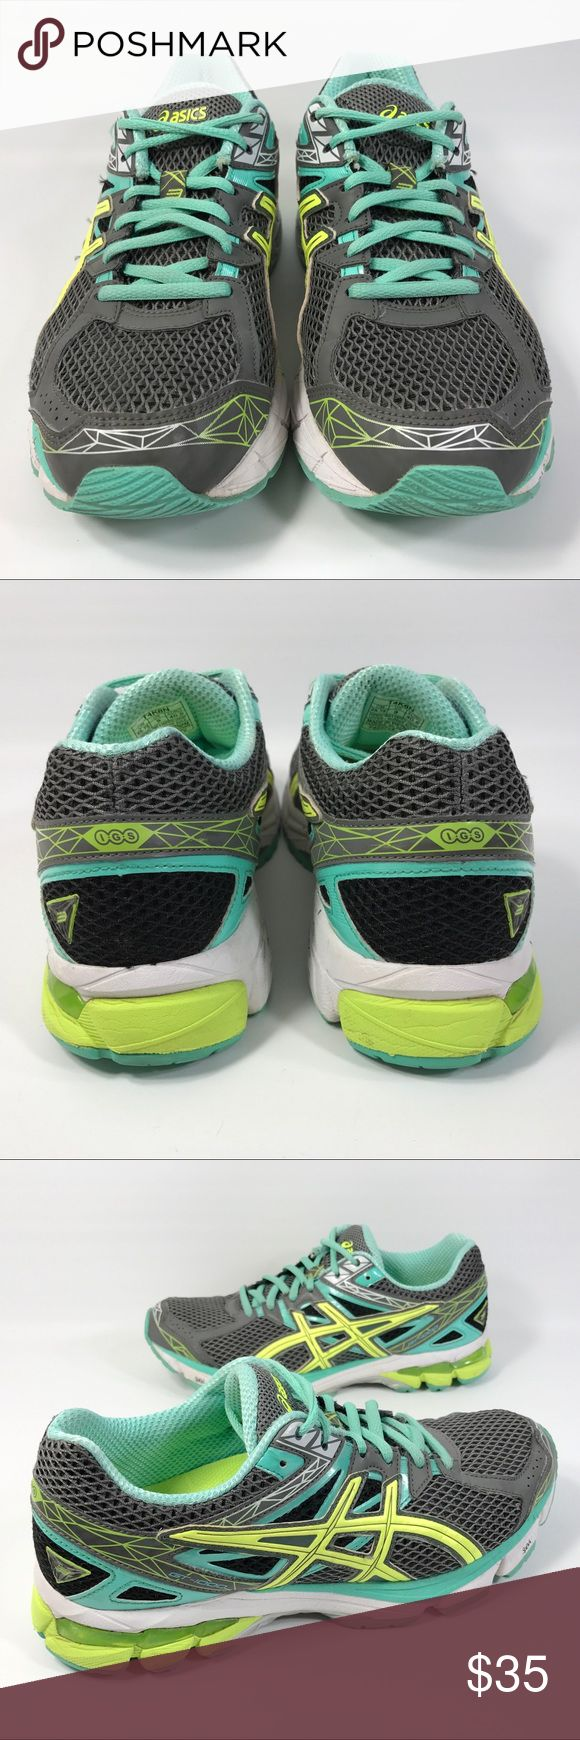 ASICS GT 1000 Running Athletic Shoe Mint green/blue/grey/yellow. Very good preowned condition with normal signs of light use. No major flaws or imperfections. Some light wear, scuffs or scratches to the uppers, soles and mid-soles. A few very minor gouges on the midsole. All wear is typical of gently worn/preowned footwear. See photos as a visual description of the item. Asics Shoes Athletic Shoes